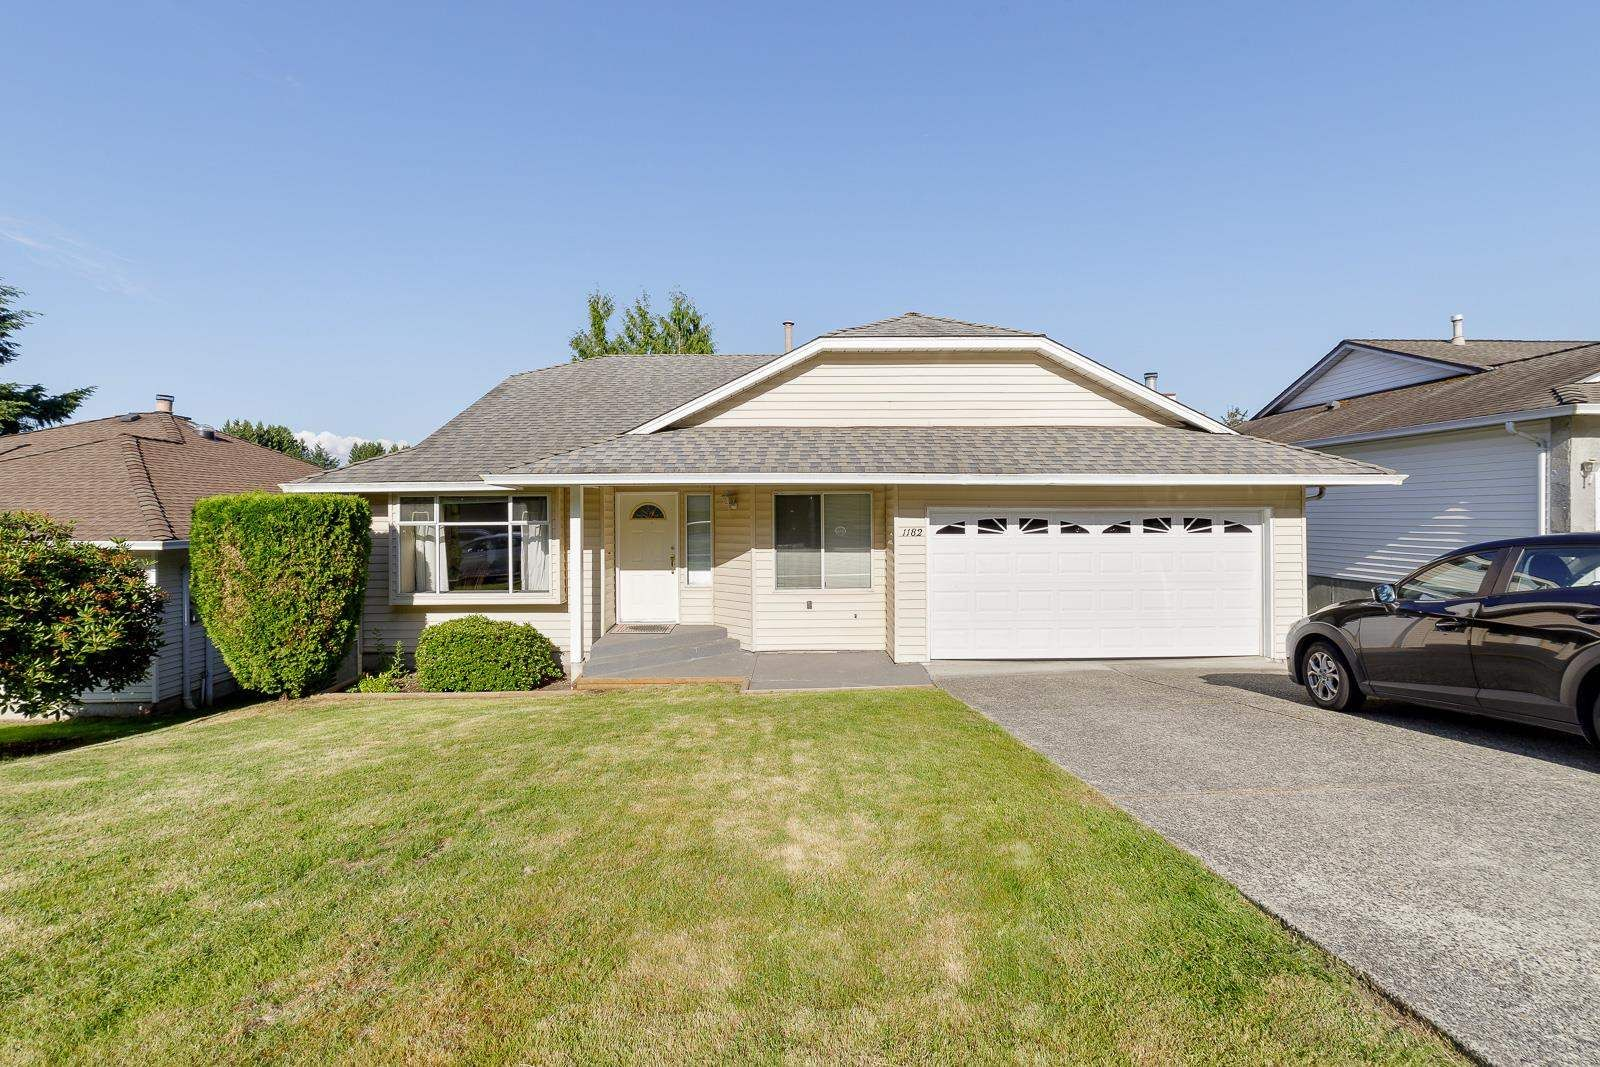 Main Photo: 1182 FRASERVIEW STREET in Port Coquitlam: Citadel PQ House for sale : MLS®# R2593936